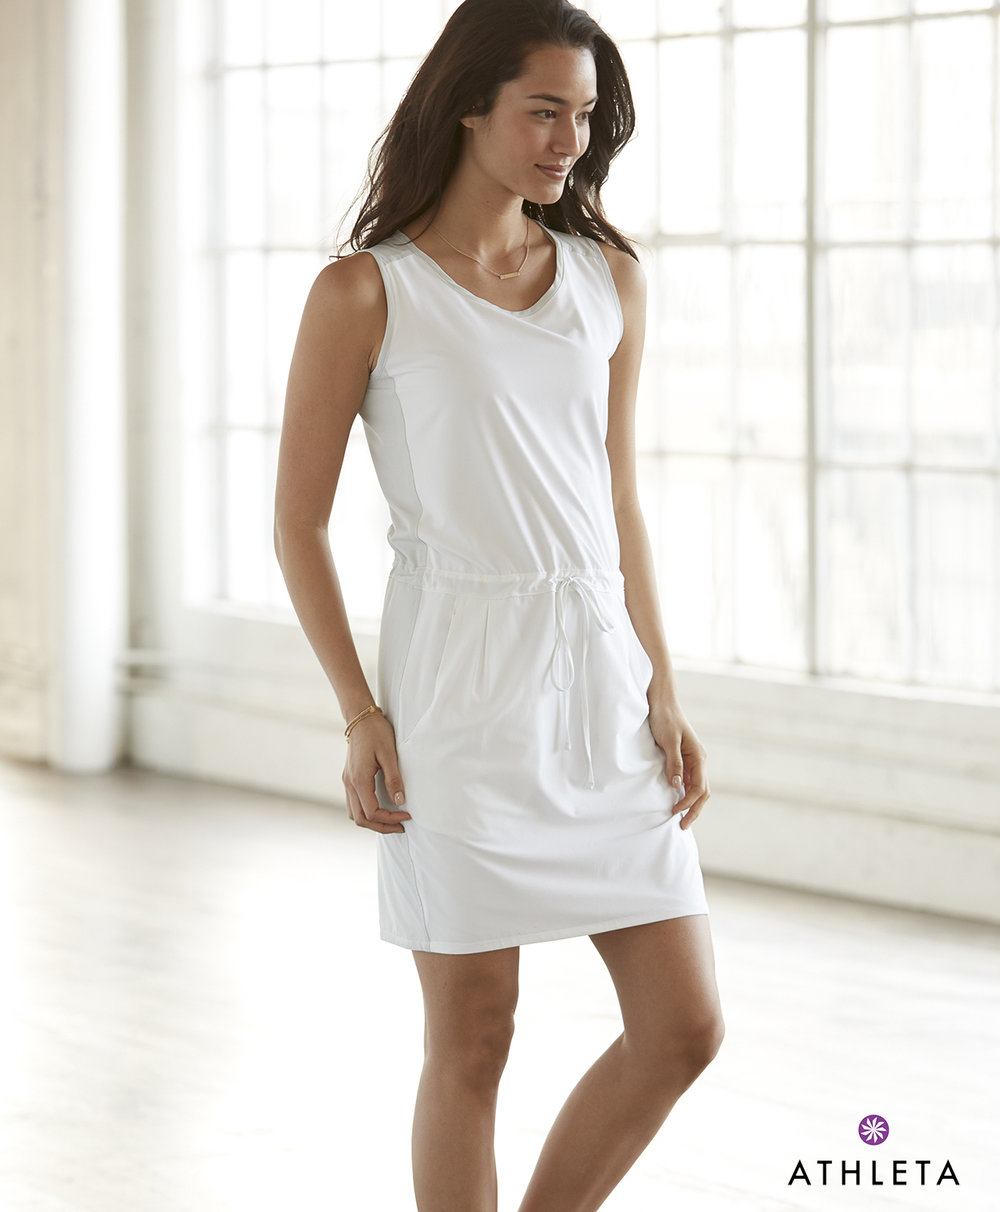 ATHLETA2_7270 copy.jpg